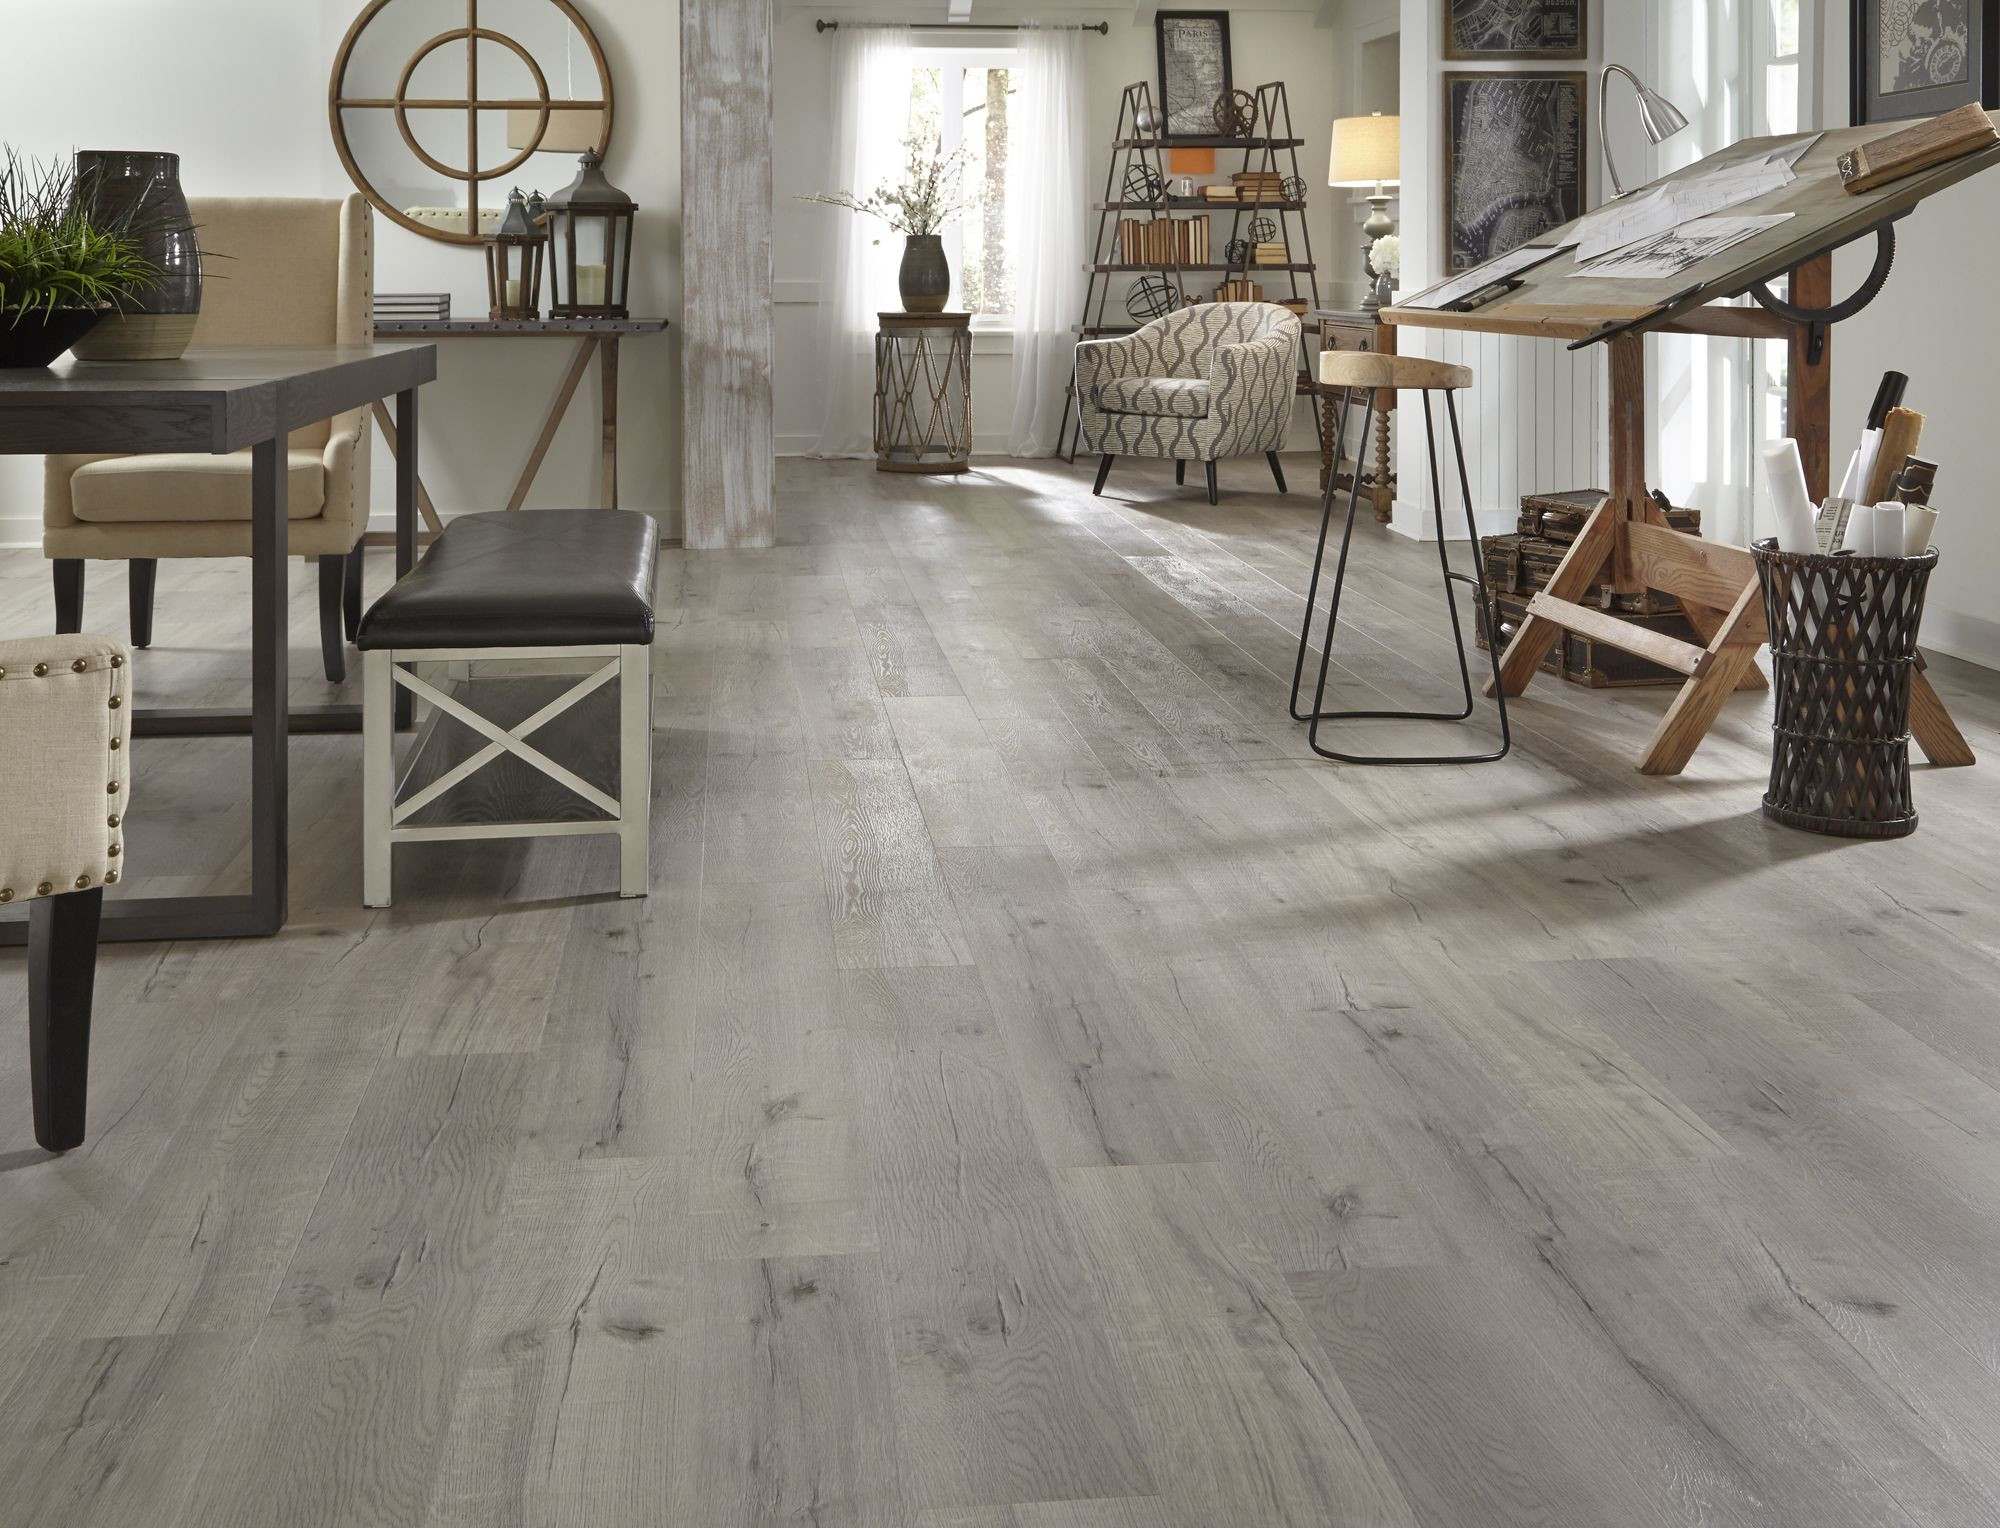 Armstrong Hickory Hardwood Flooring Of This Fall Flooring Season See 100 New Flooring Styles Like Driftwood Throughout This Fall Flooring Season See 100 New Flooring Styles Like Driftwood Hickory Evp Its Part Of A New Line Of Waterproof Flooring thats Ideal for Any Space